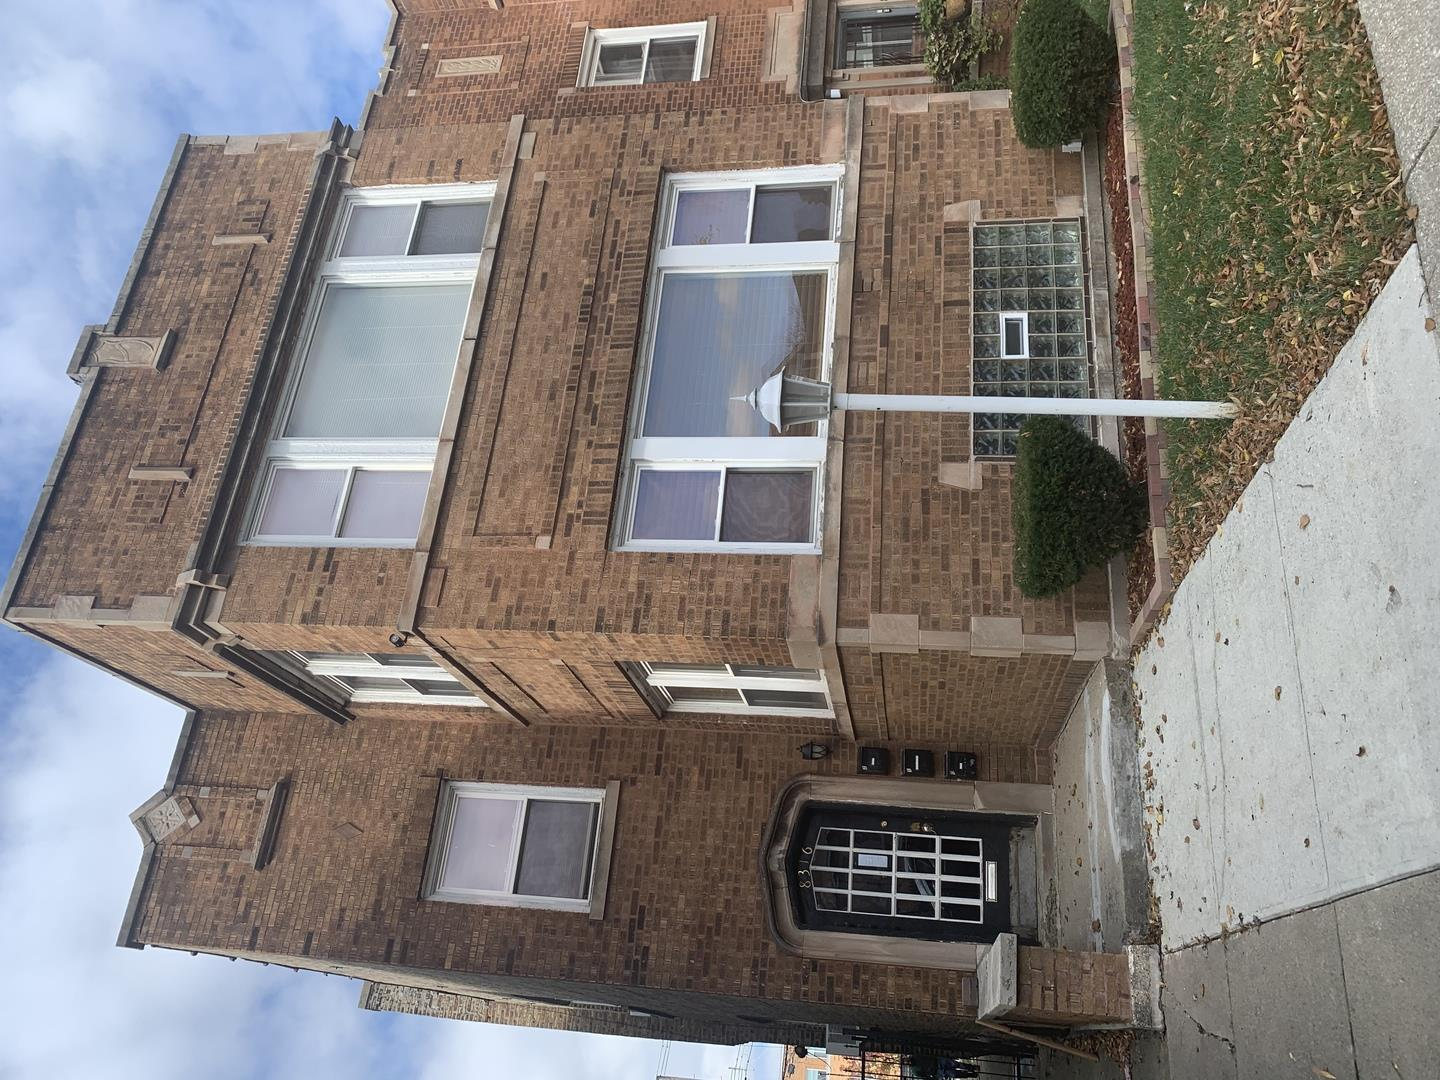 8316 S May Street, Chicago, IL 60620 - #: 10915767